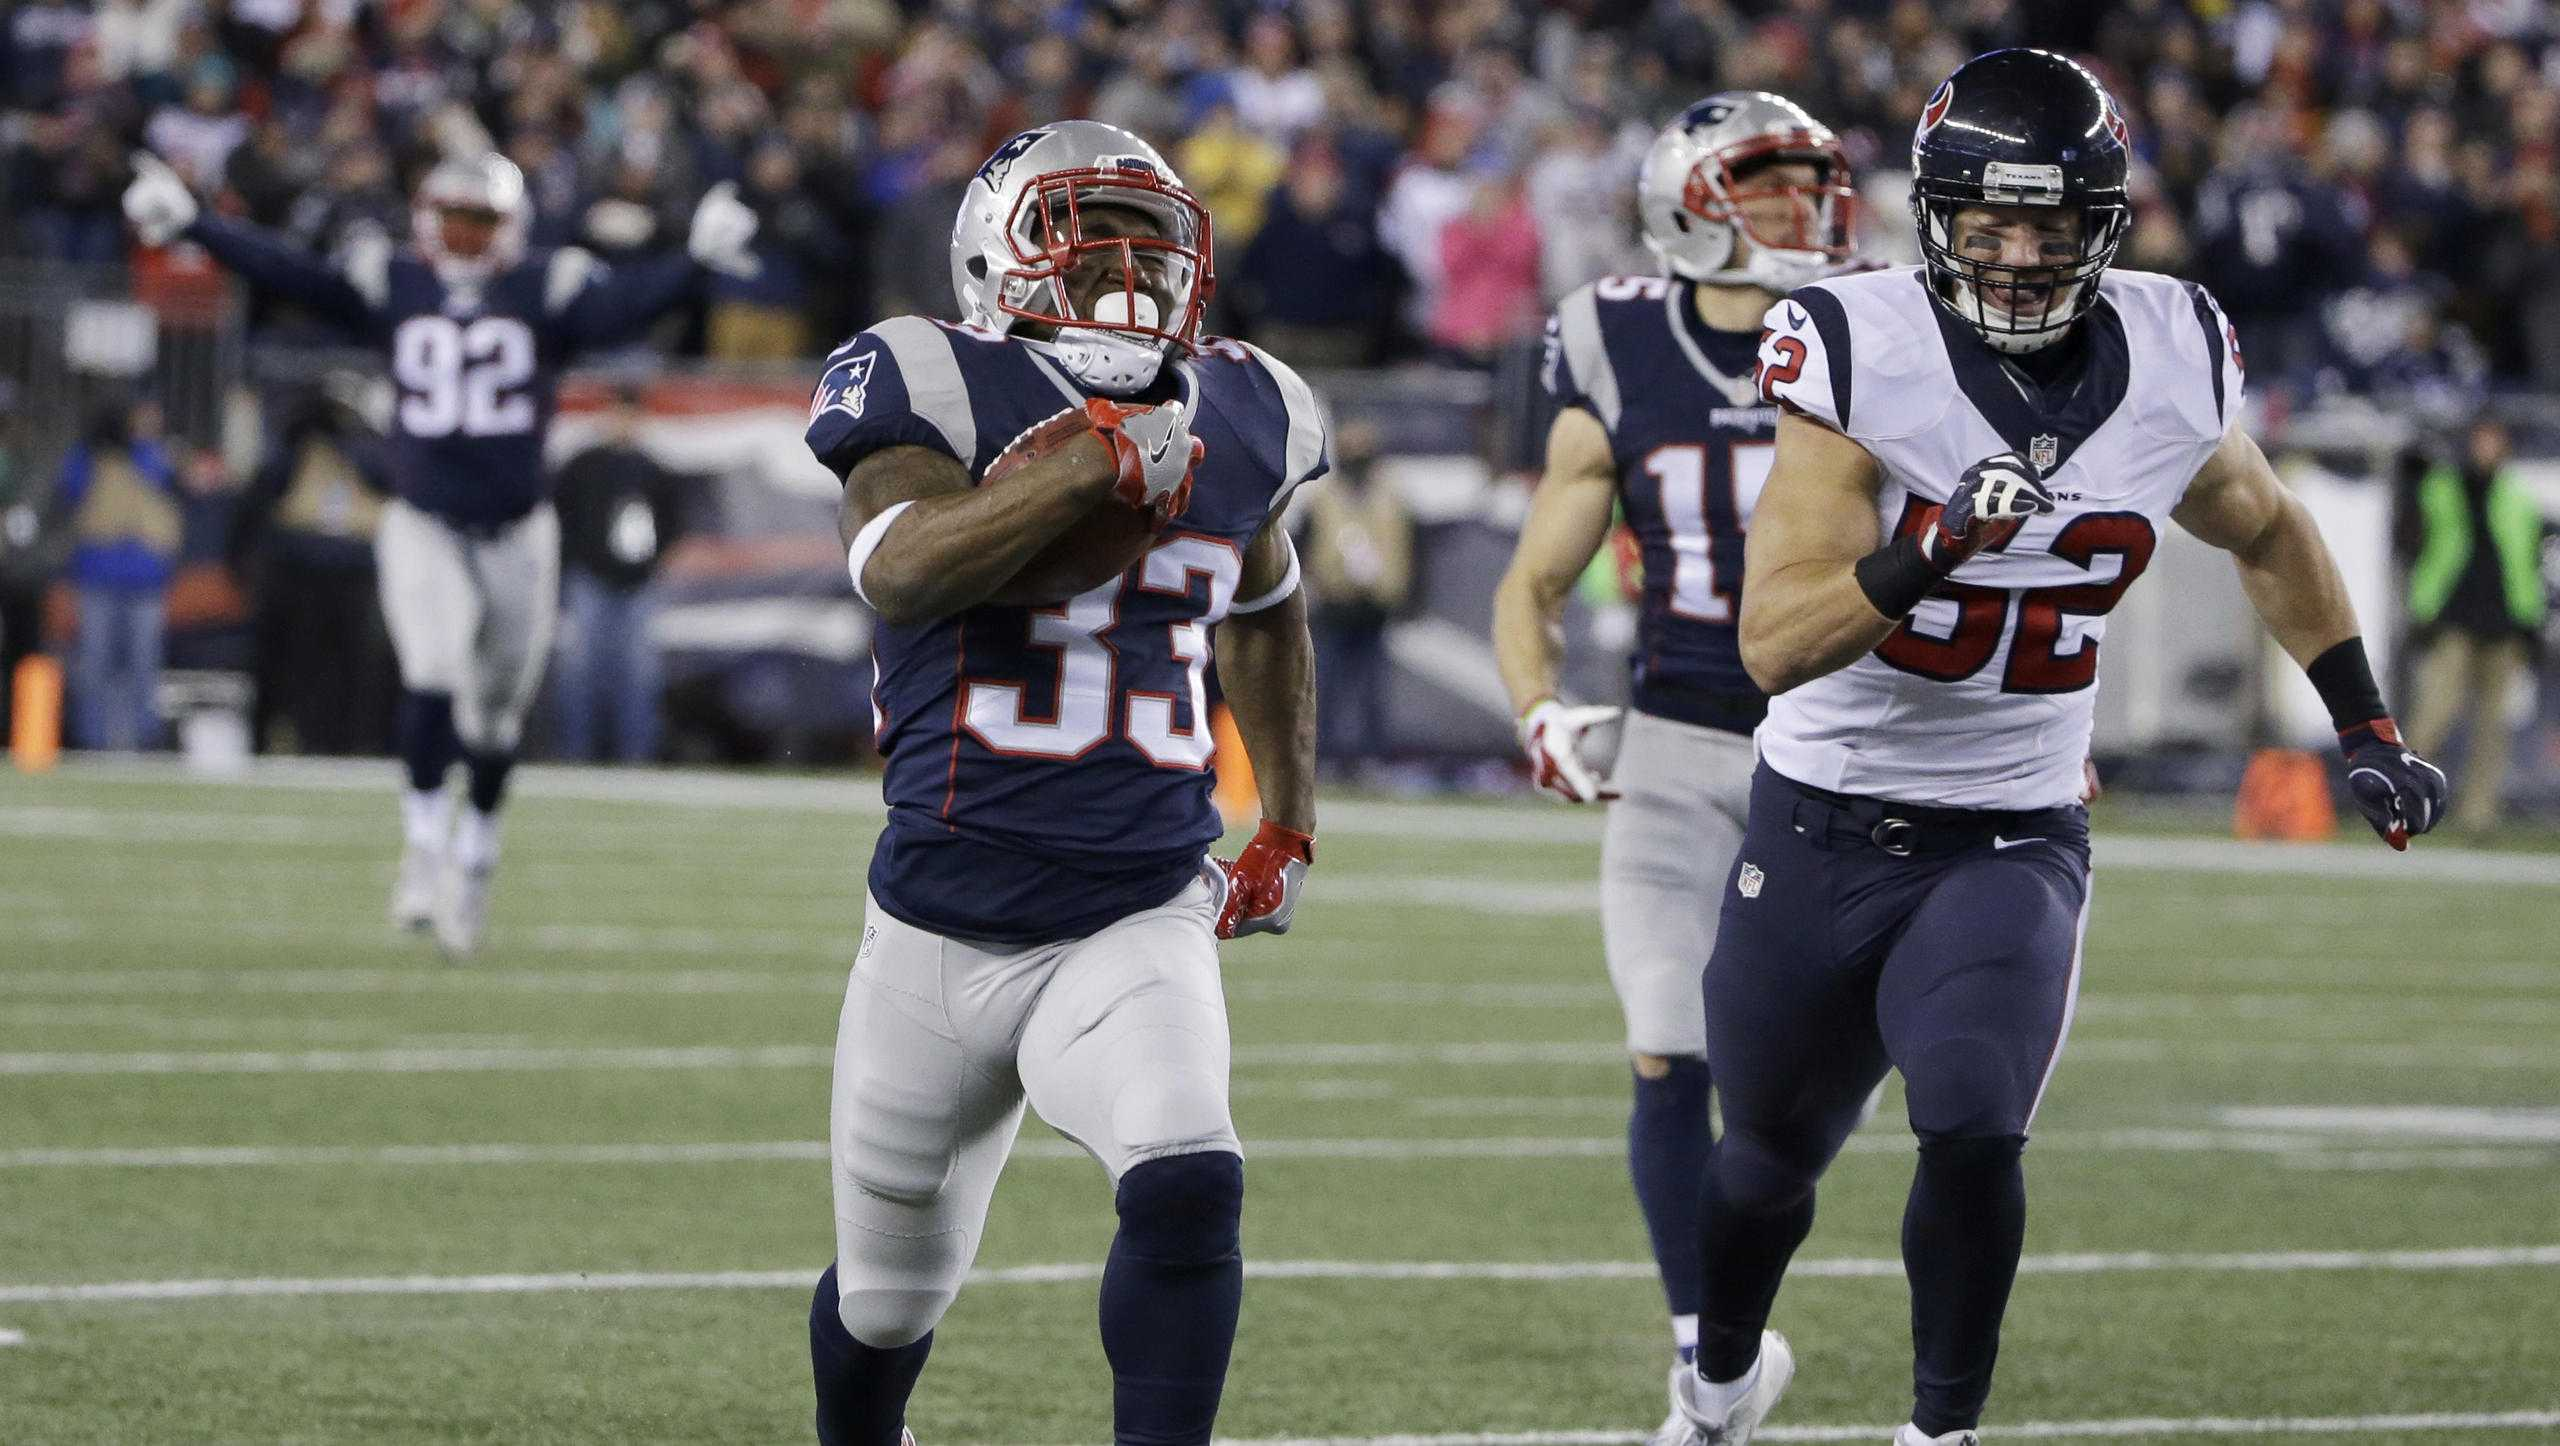 New England Patriots running back Dion Lewis (33) runs ahead of Houston Texans linebacker Brian Peters (52) for a touchdown during the first half of an NFL divisional playoff football game, Saturday, Jan. 14, 2017, in Foxborough, Mass. (AP Photo/Elise Amendola)